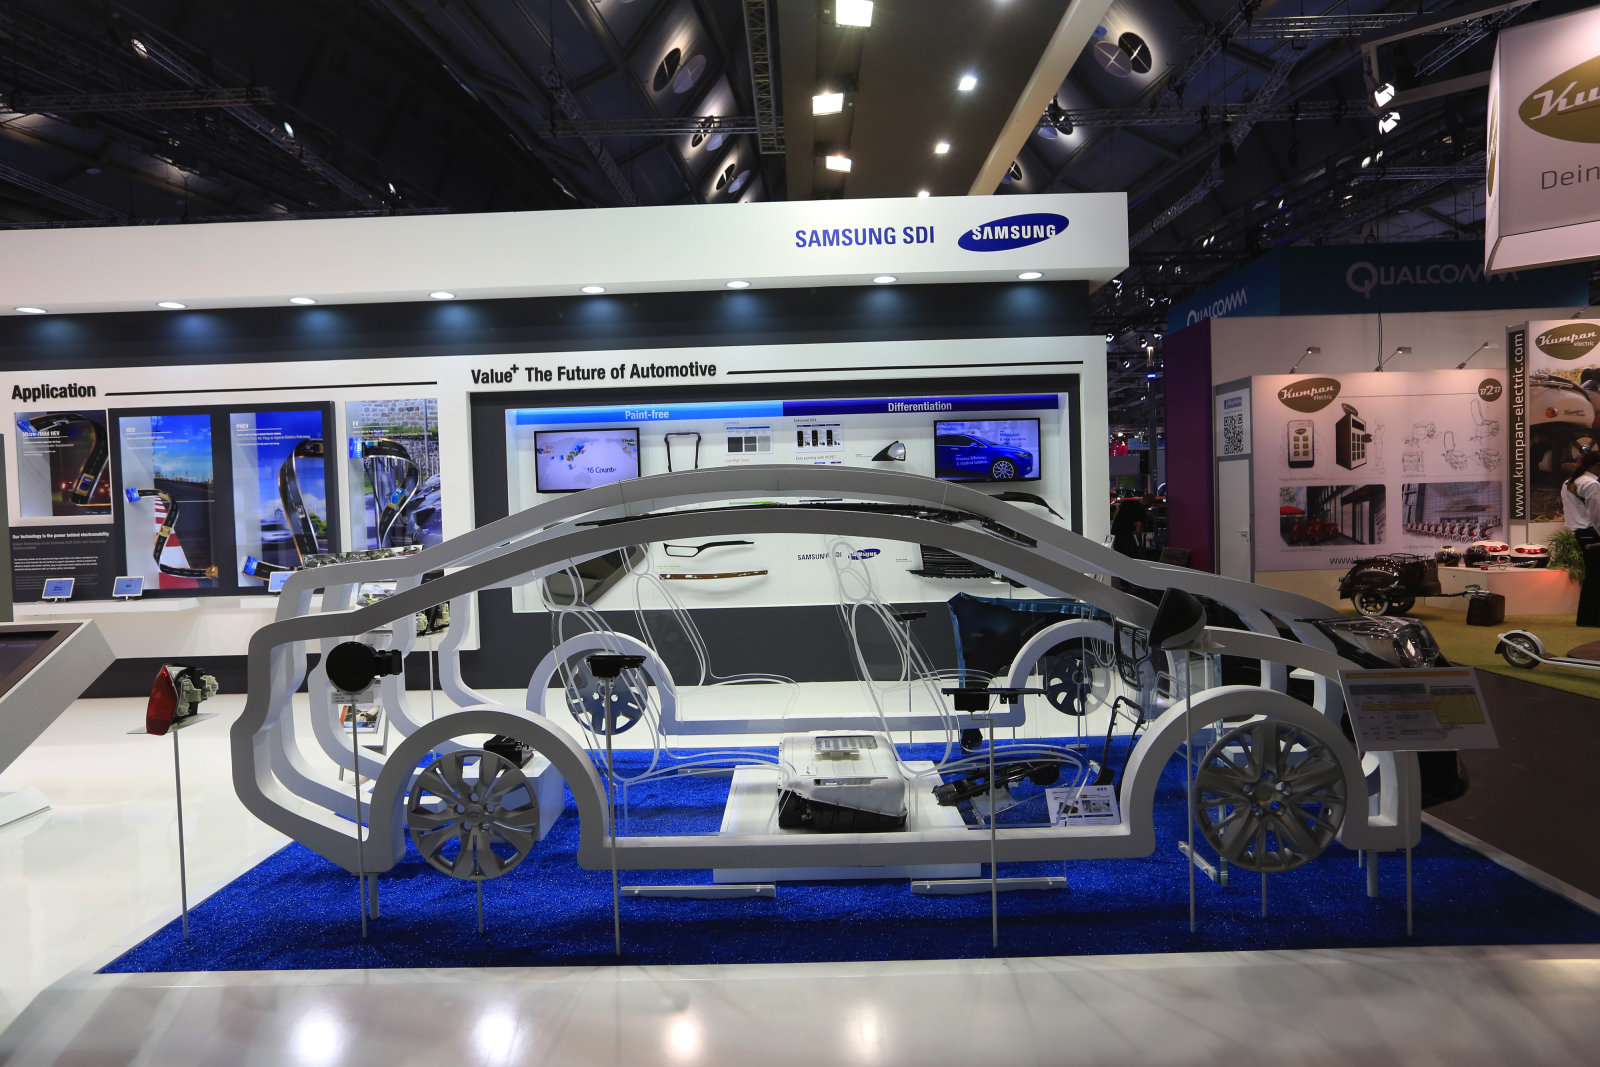 Samsung-SDI-booth-EV-battery